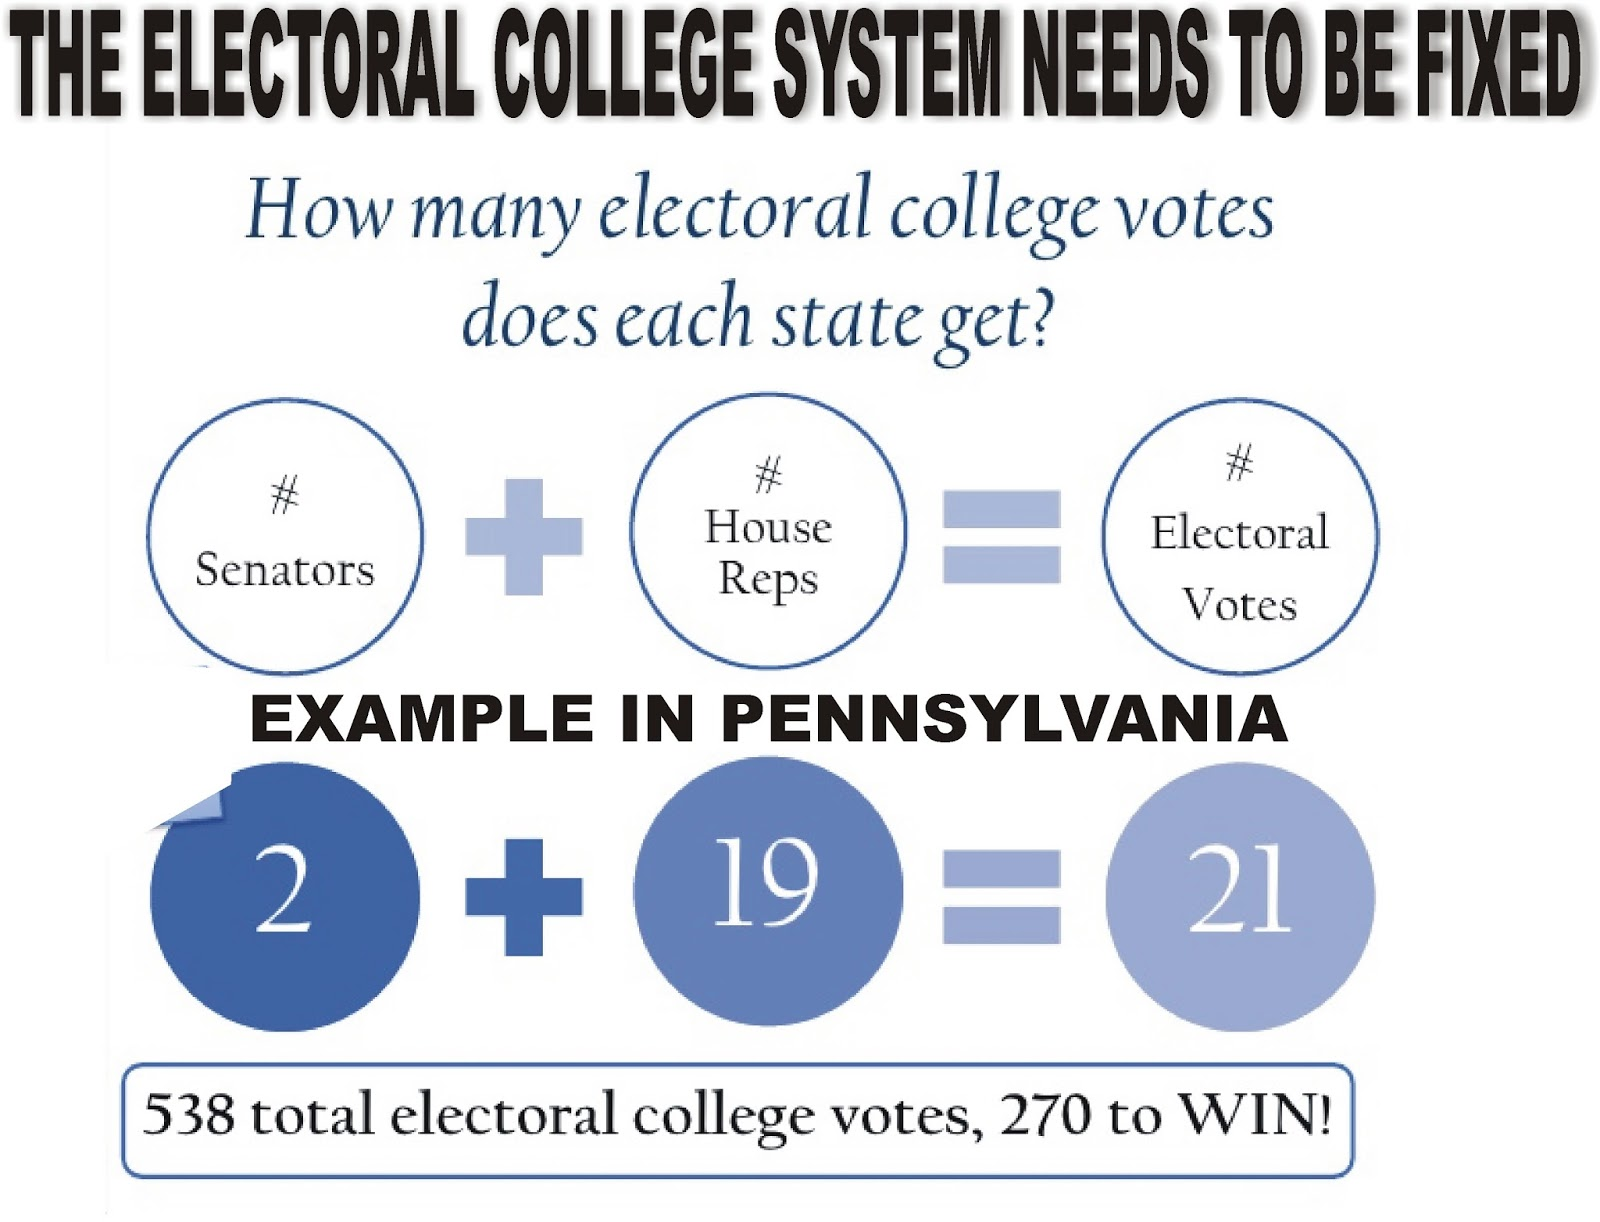 electoral college system 2 essay The summary of the lecture can be understood as the three points those are considered to be the flaws of the electoral college system by the lecturer he terms the.